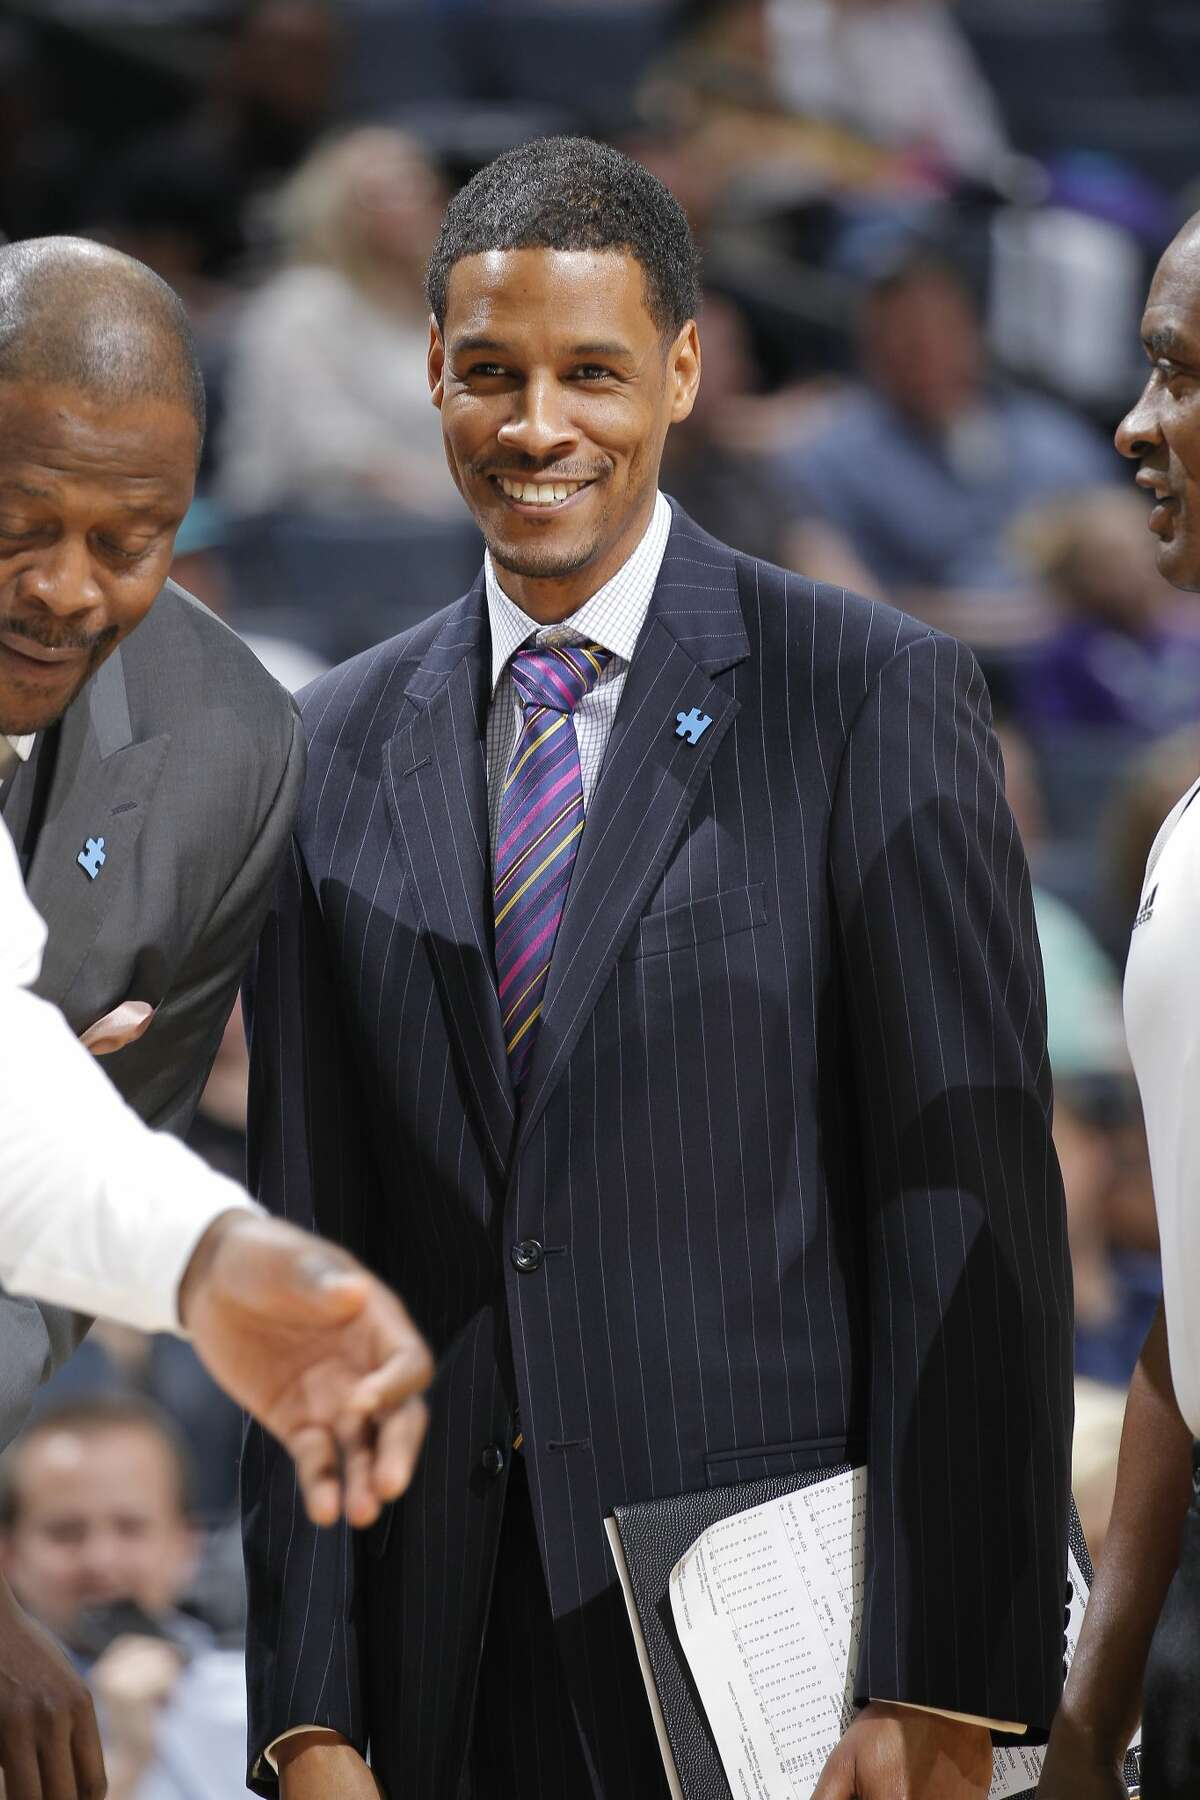 Stephen Silas is getting strong consideration from the Rockets as their next head coach. Click through the gallery to see the likely candidates for the job.